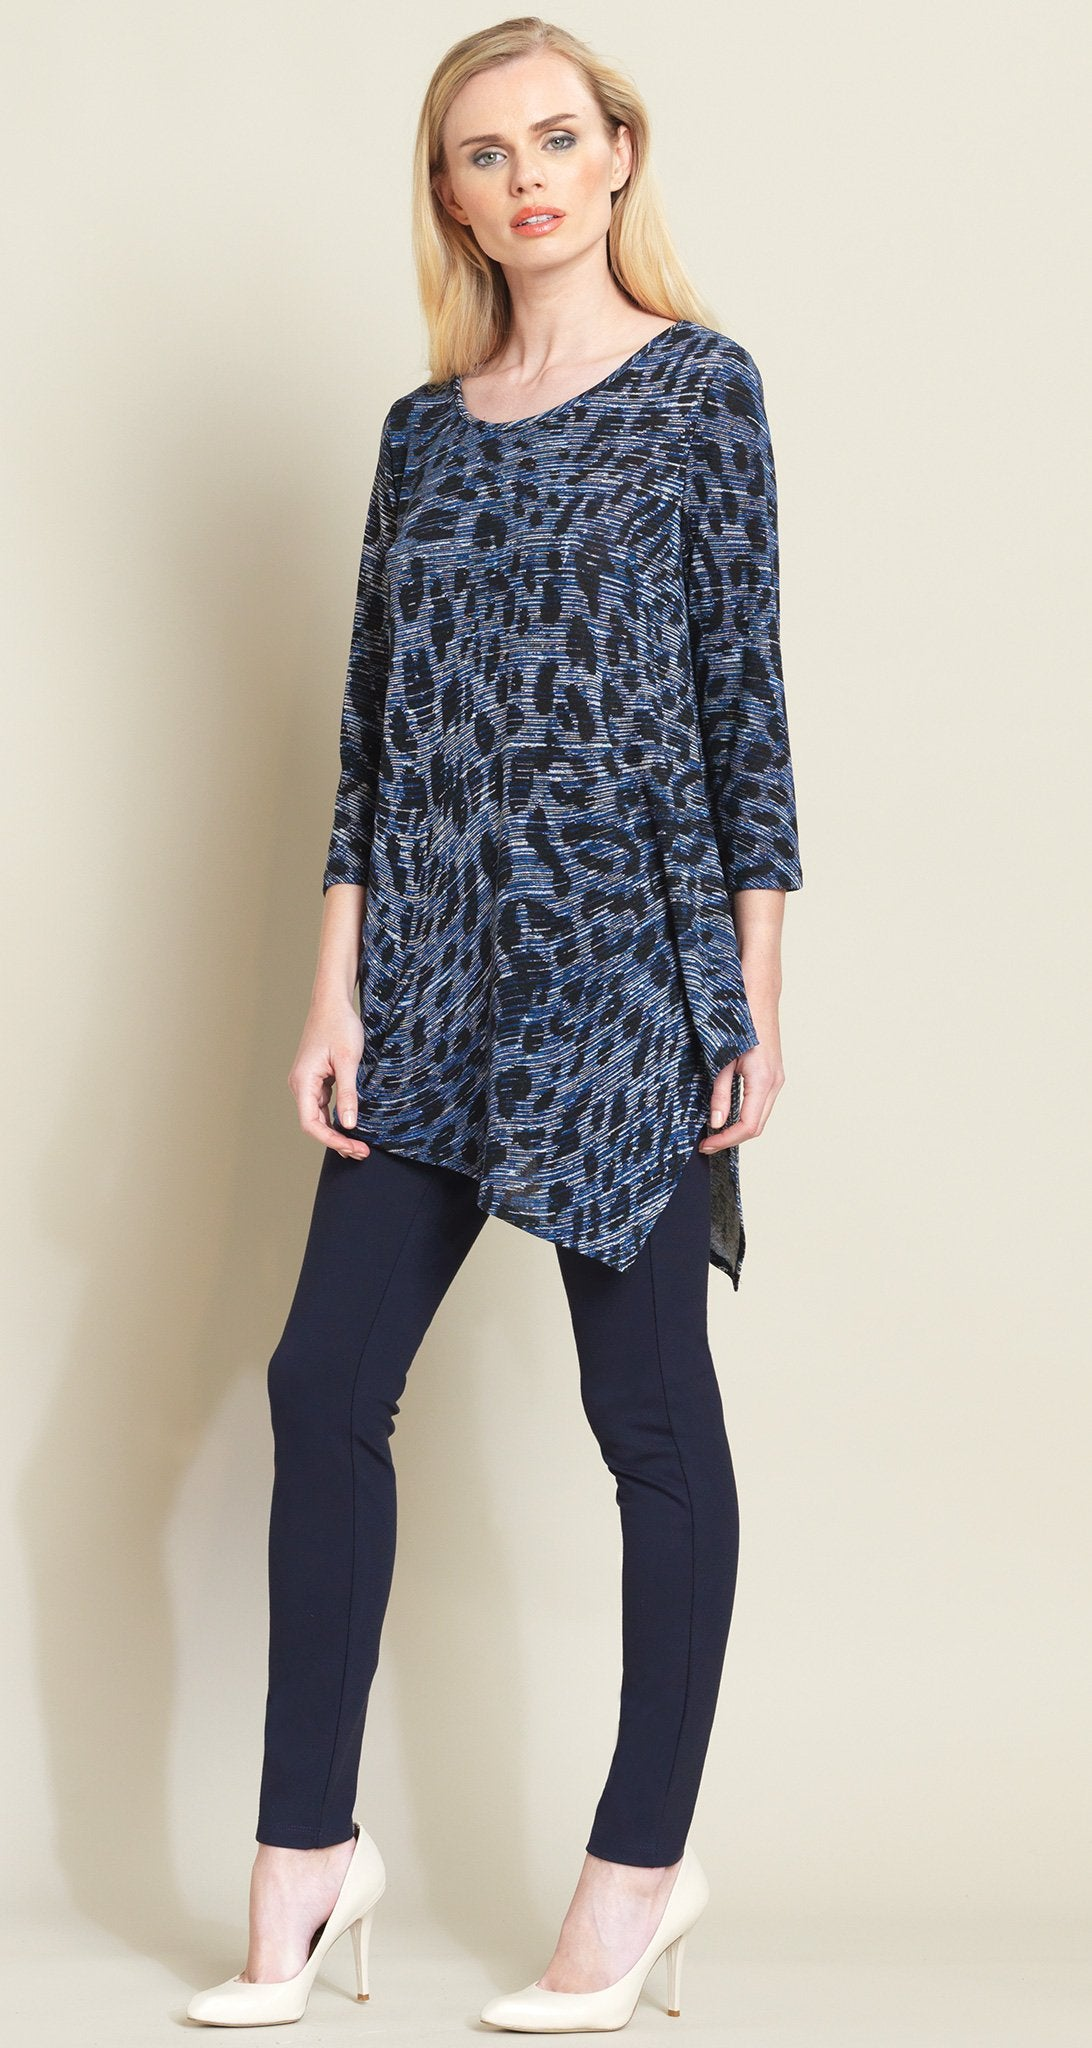 Animal Wave Print Angle Hem Sweater Tunic - Blue - Final Sale! - Clara Sunwoo